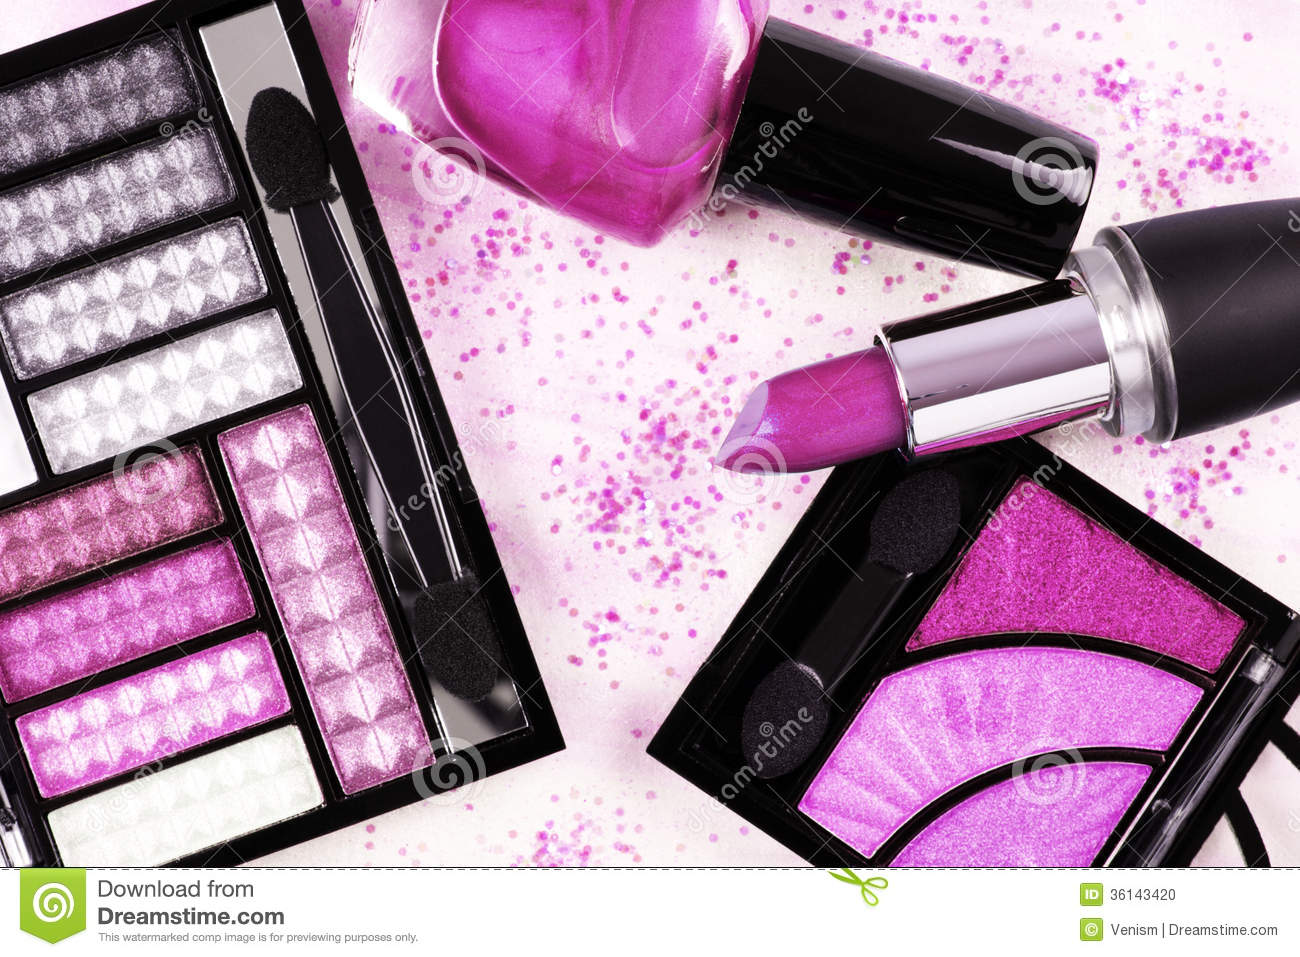 Make-up products in pink stock photo. Image of eyeshadow ...